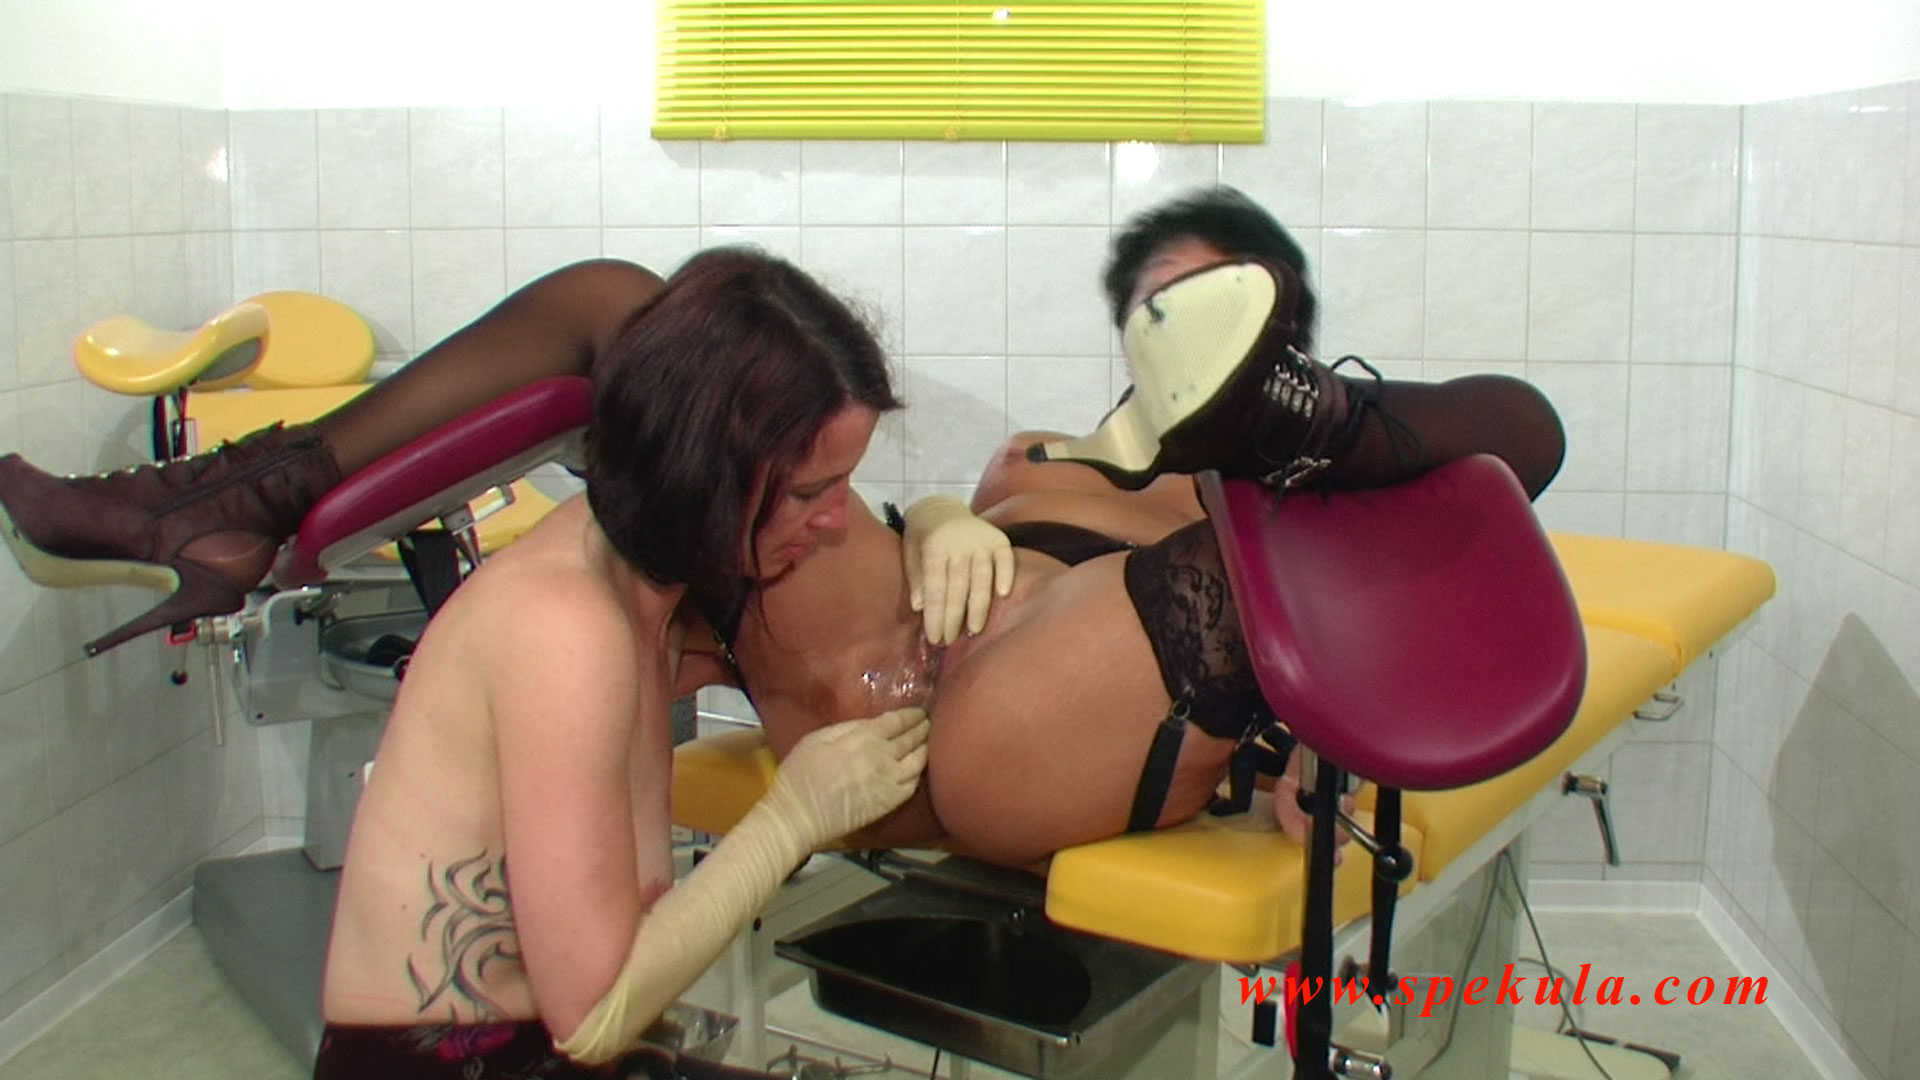 Ffm slut threesome